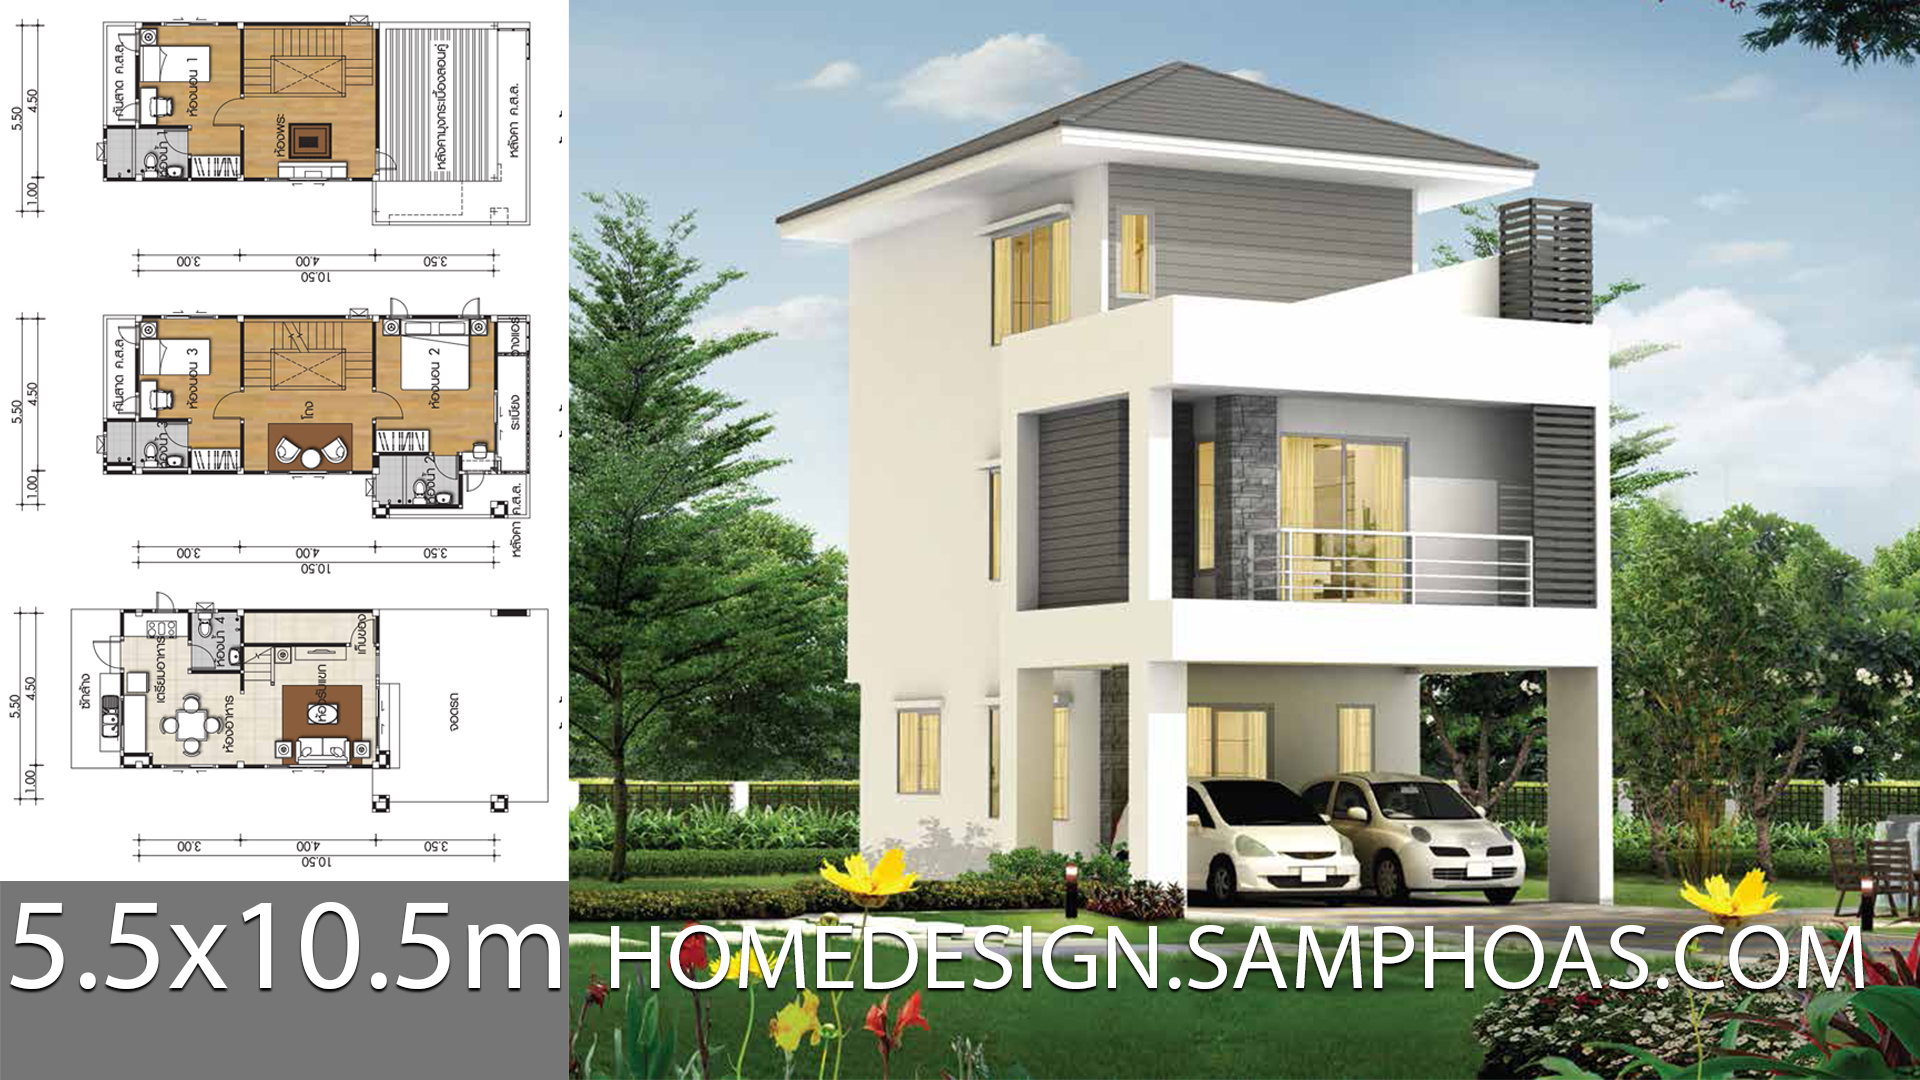 Small House Design Plans 5 5x10 5m With 3 Bedrooms Home Ideas